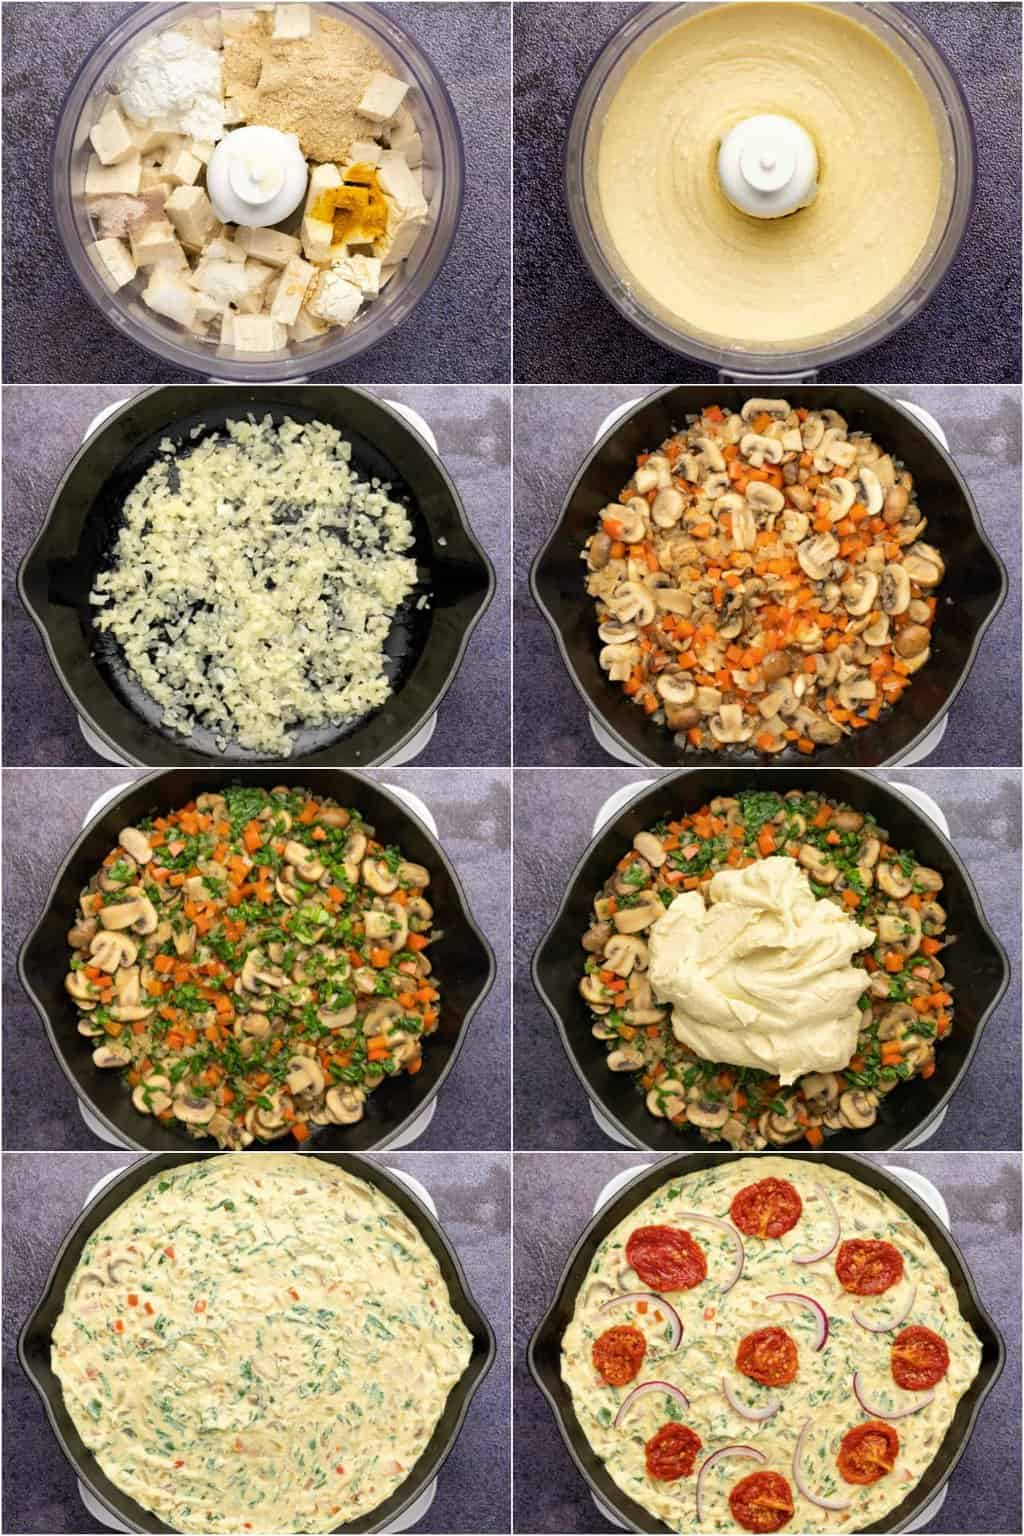 Step by step process photo collage of making a vegan frittata.